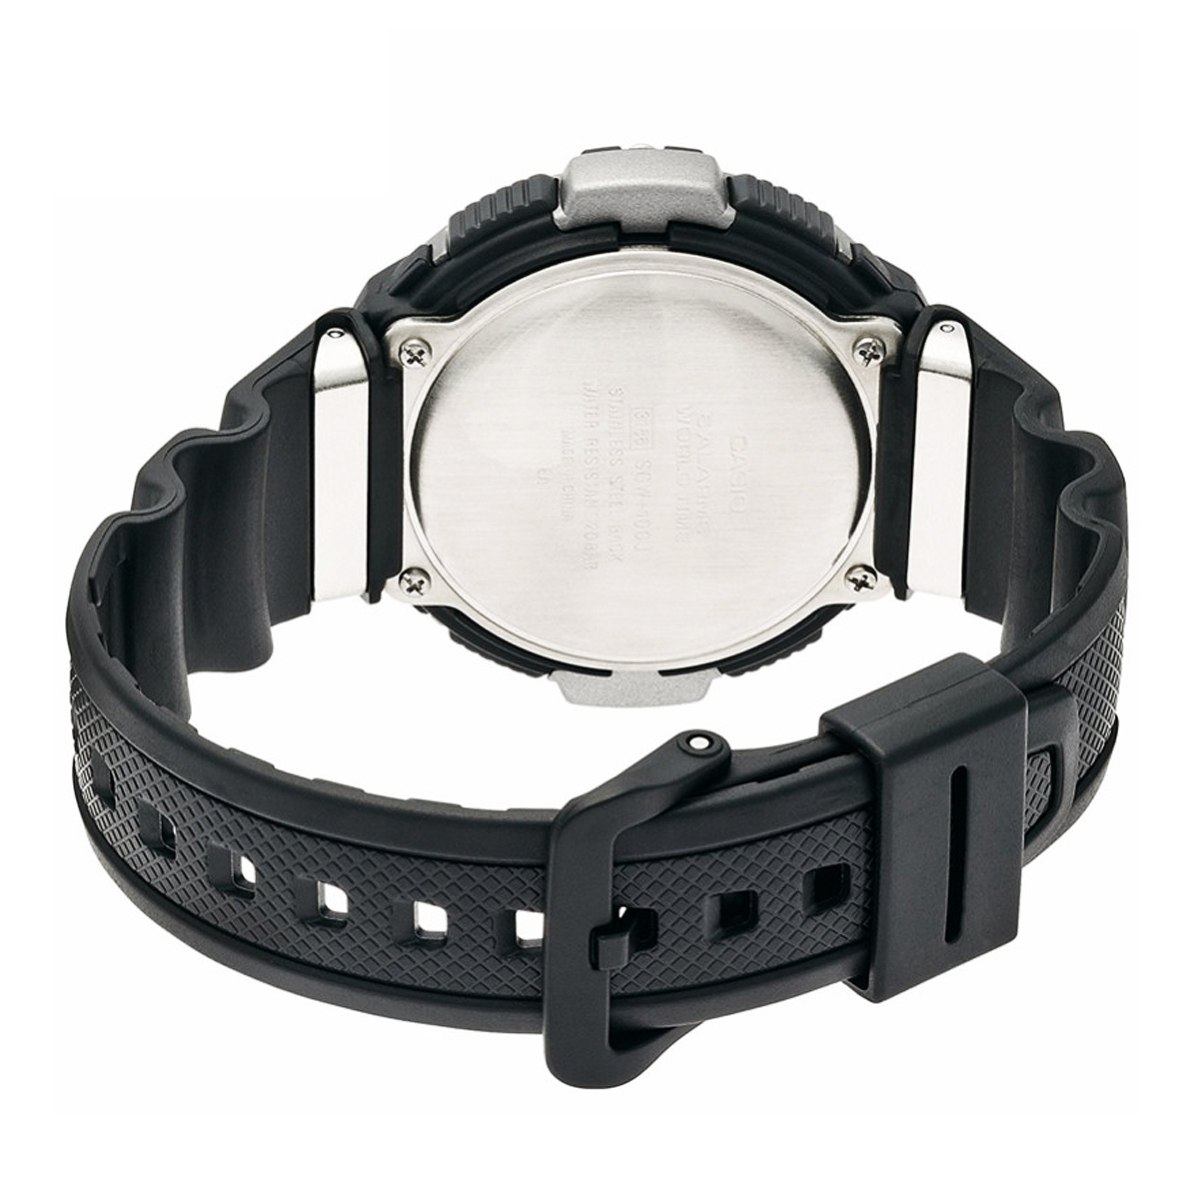 11 Possible Replacements On The View: Black Silicone Watch Strap Replacement For SGW 100 1VH 761